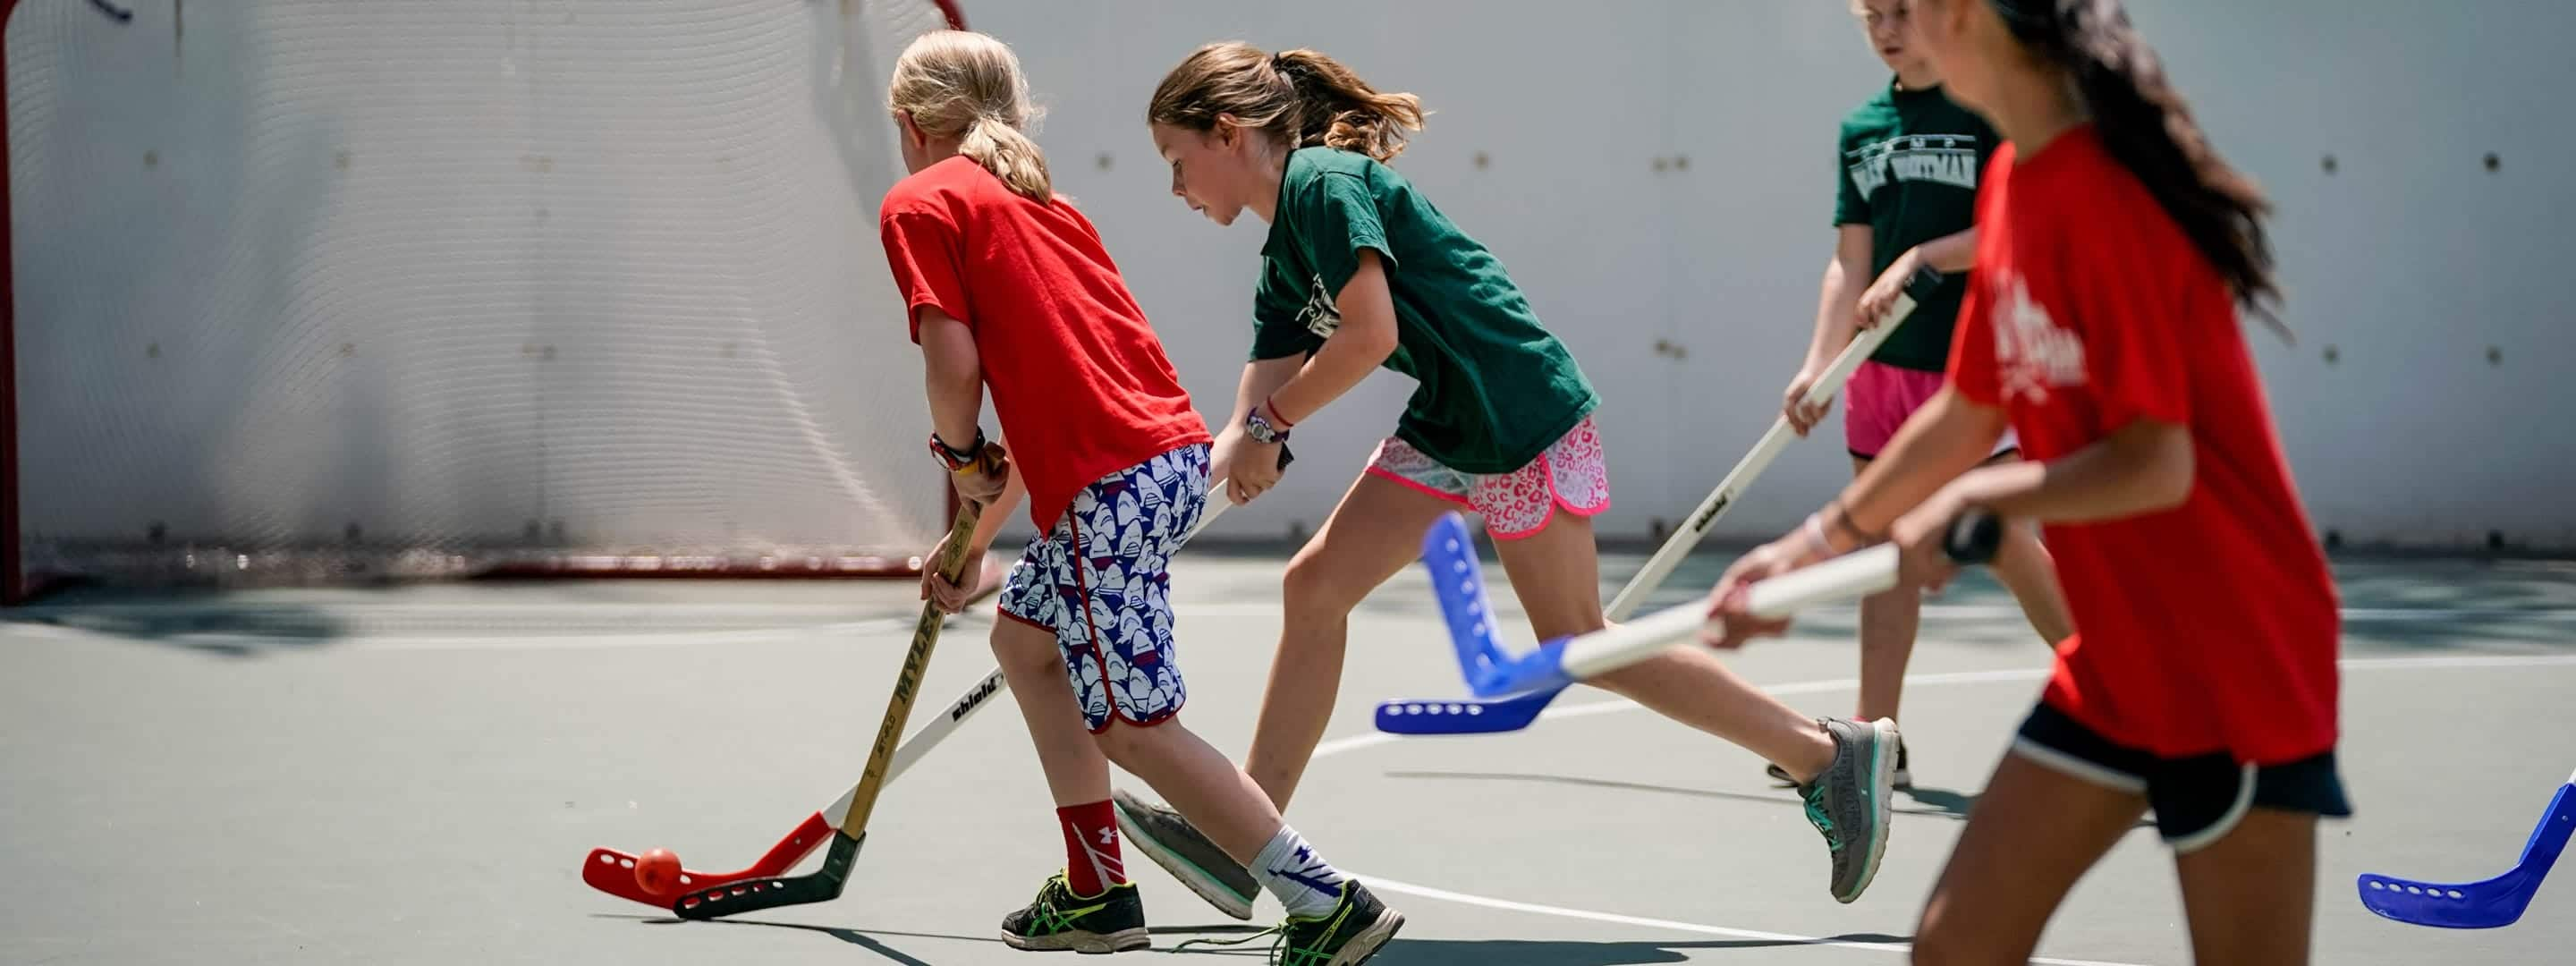 girls playing street hockey